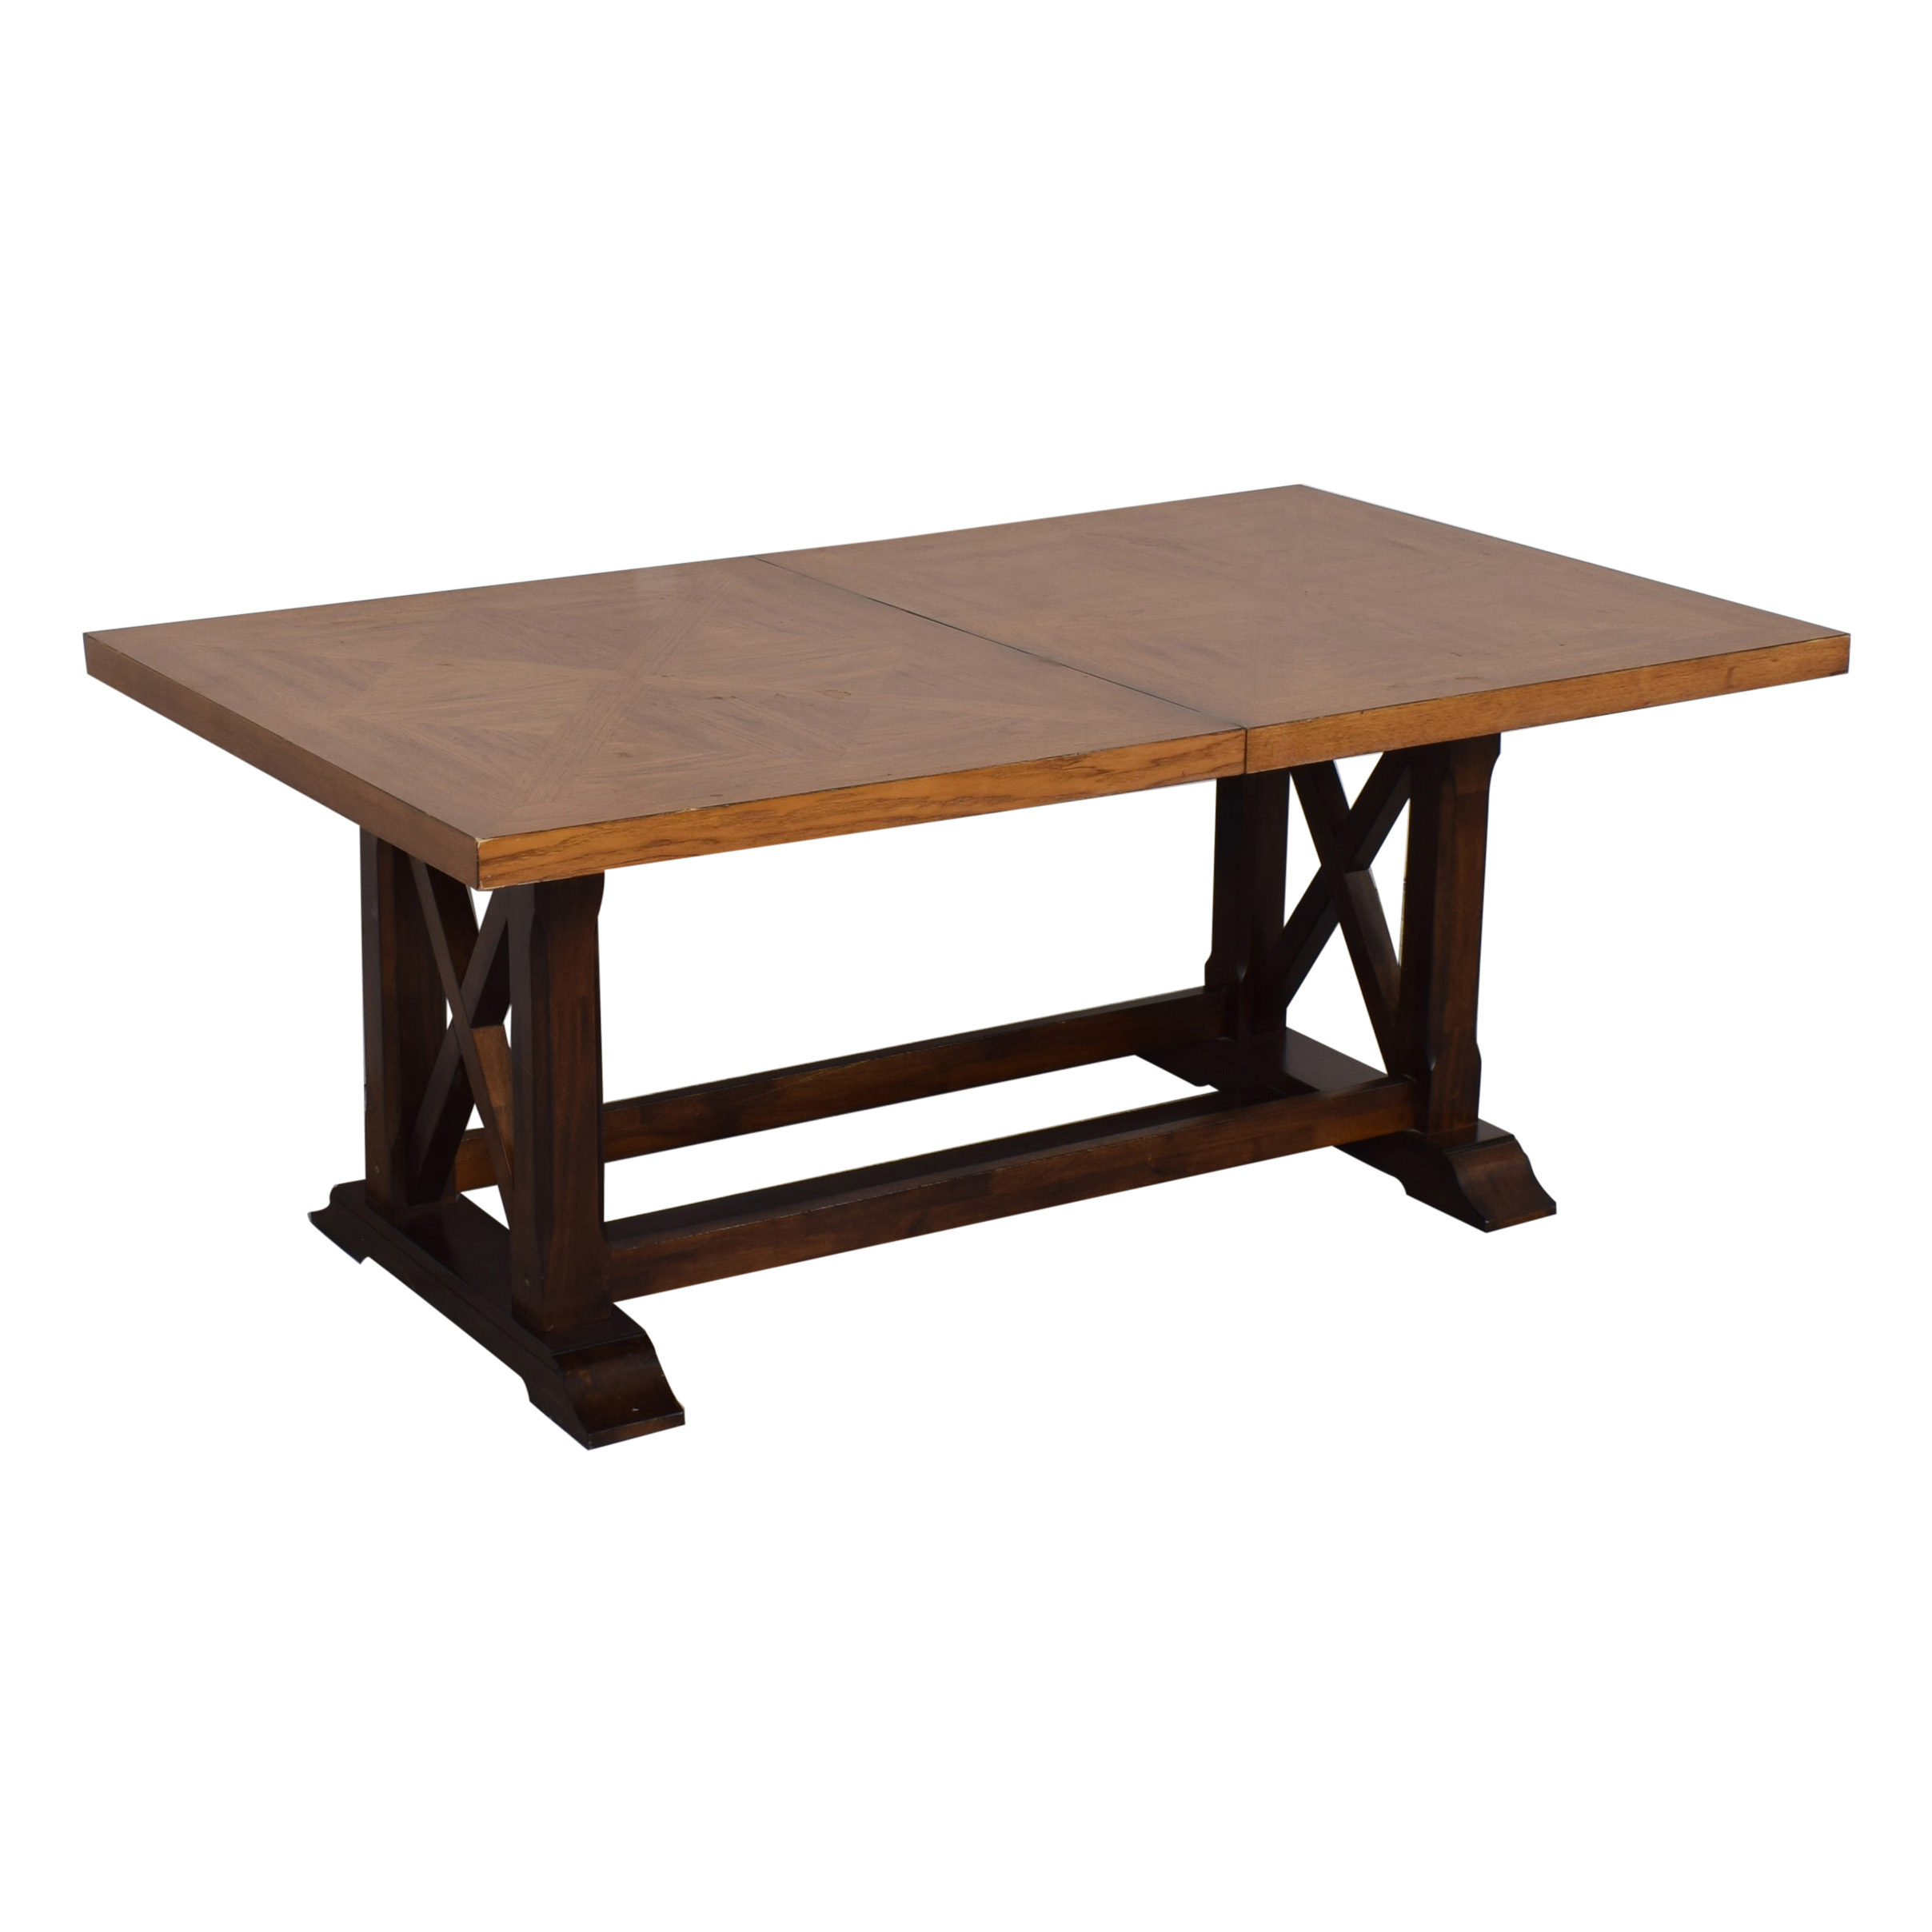 Klaussner Dayton Extended Dining Table / Dinner Tables